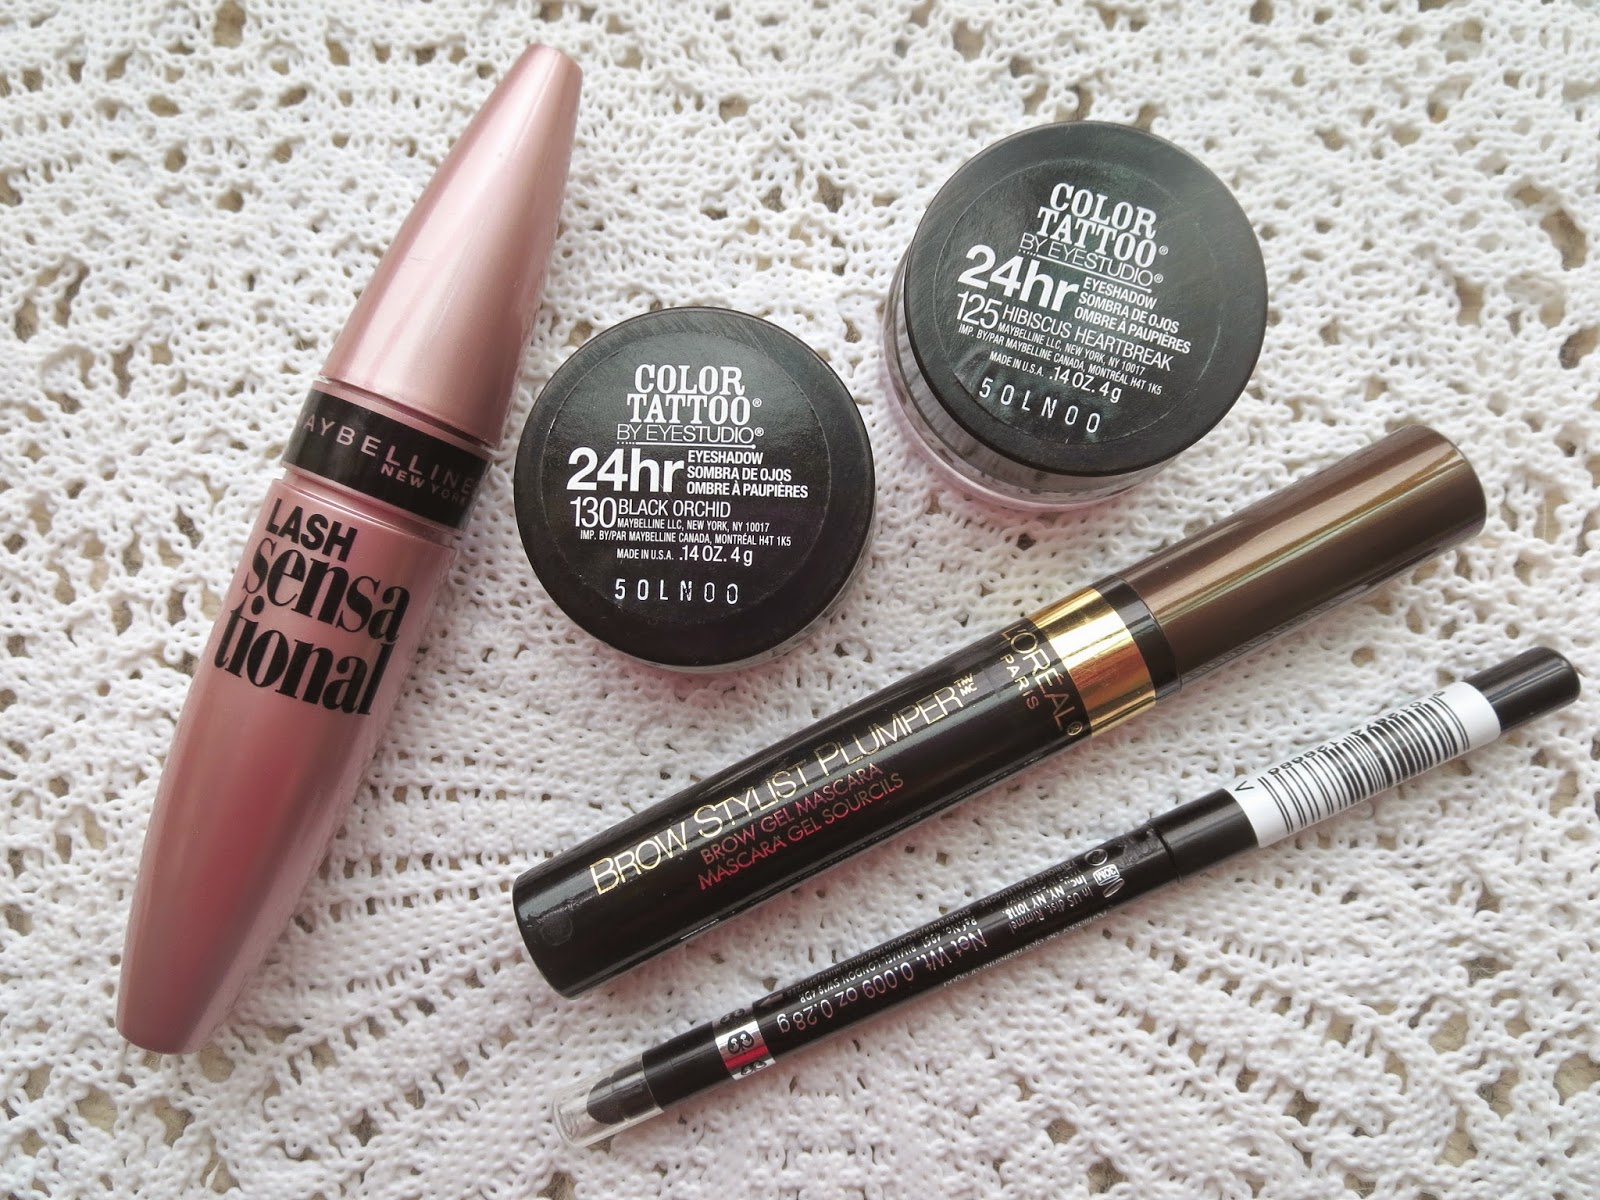 a picture of top 10 products under 10 dollars : Maybelline Lash Sensational, Maybelline Color Tattoo, L'Oreal Brow Stylist Plumper, Rimmel Exaggerate Waterproof Eye Definer